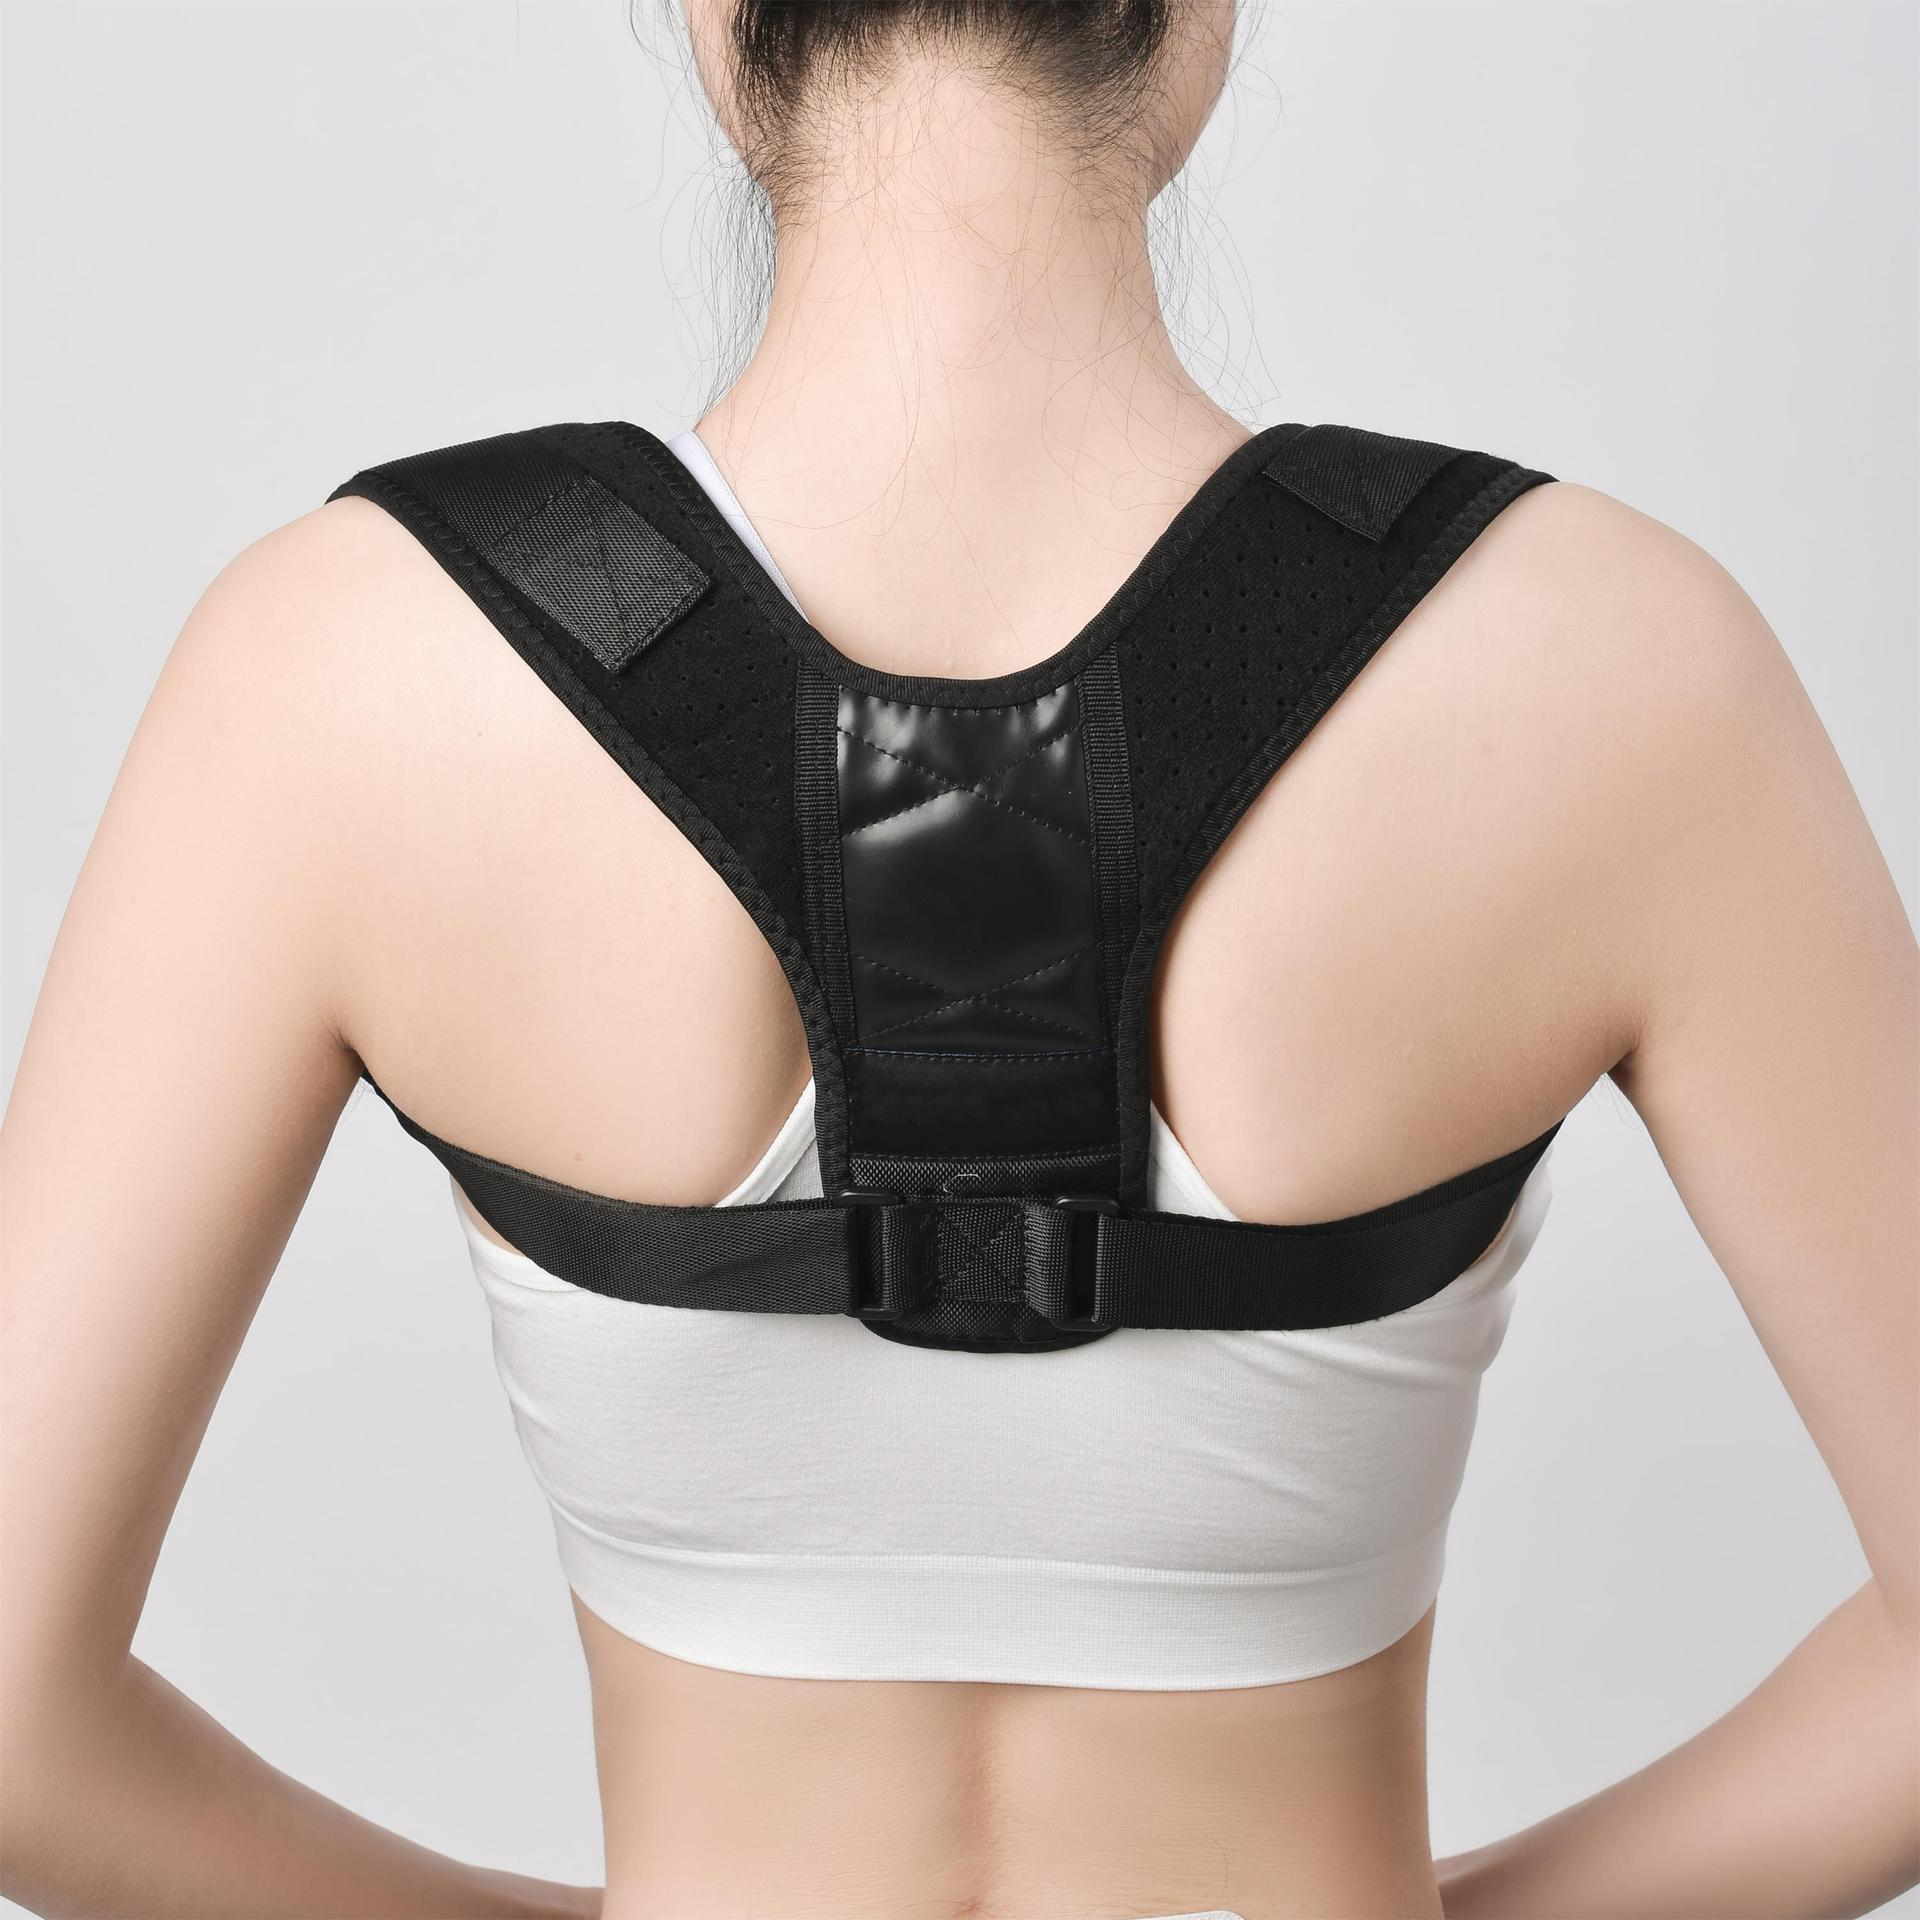 Posture Corrector Adult Students Universal Anti-Kyphotone Amazon Sitting Position Rectifier Day Pin Tens